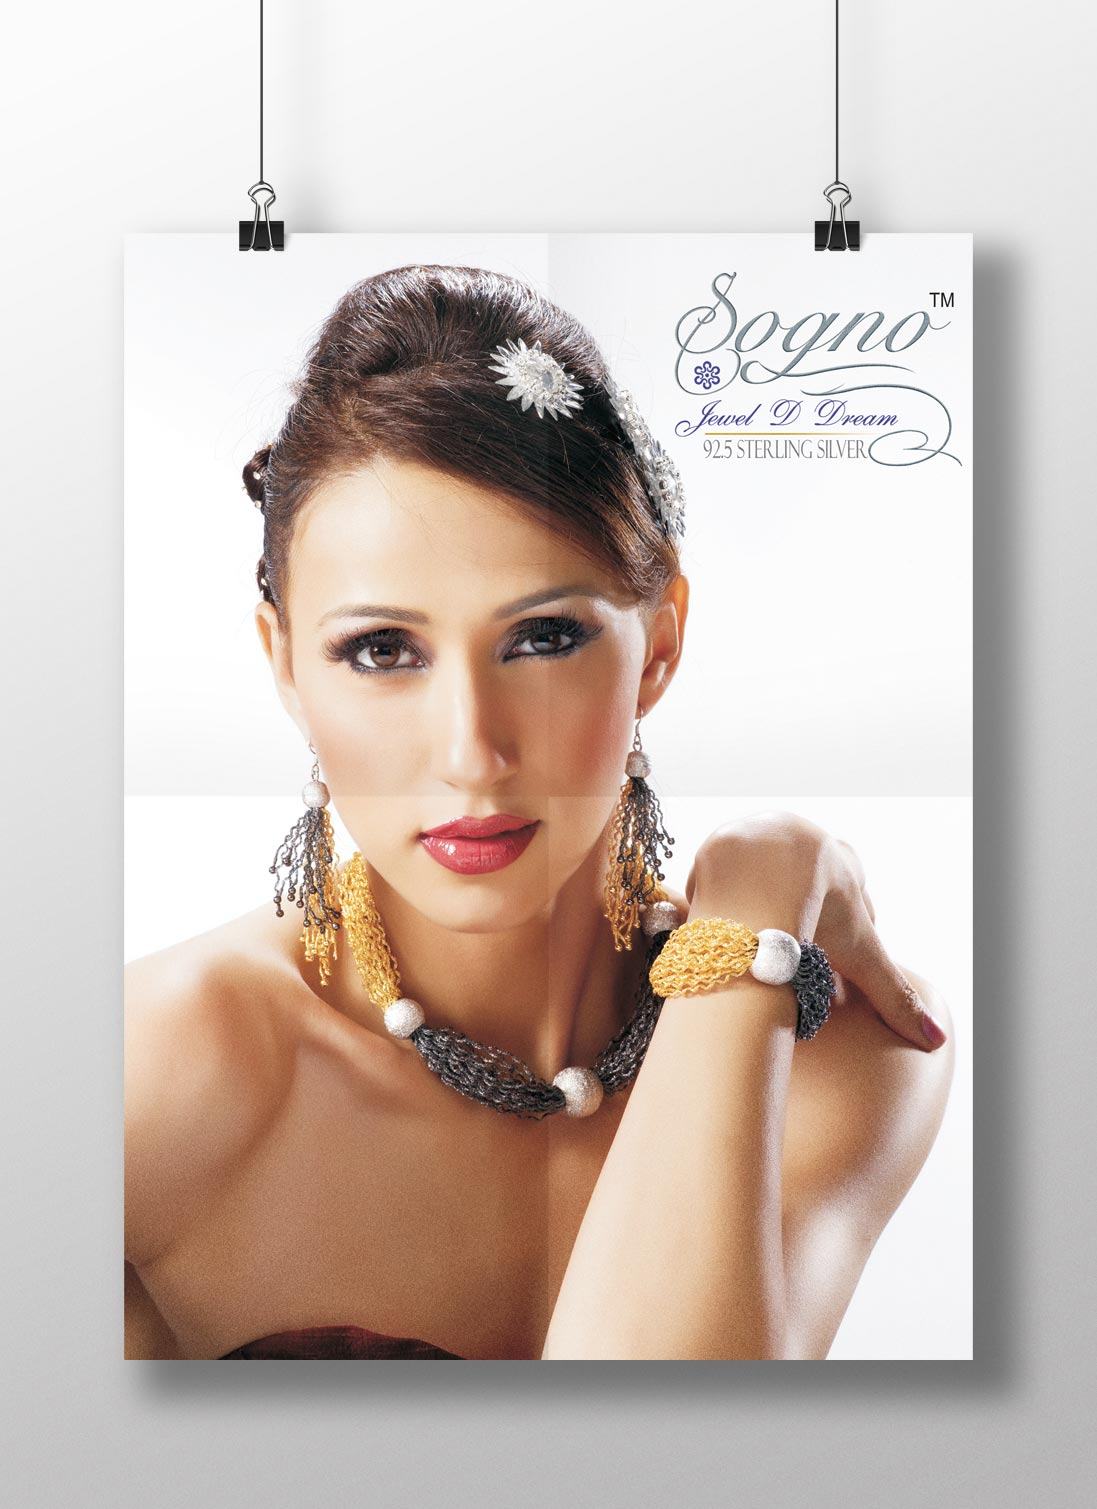 Posters for Sogno jewels